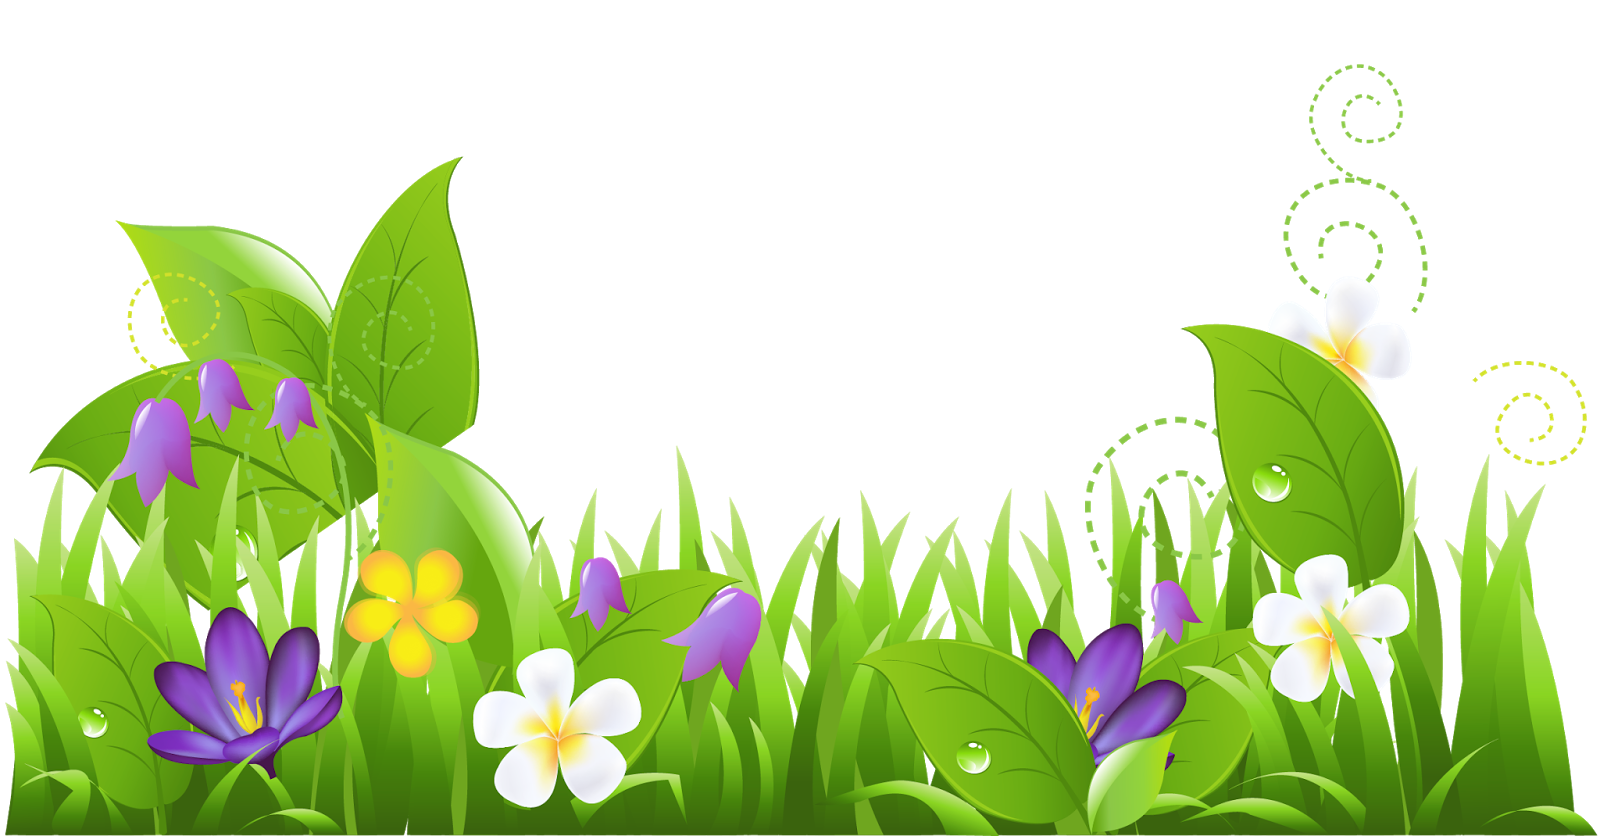 Enchanting flower garden cartoon. Earth with axis tilted toward sun free clipart